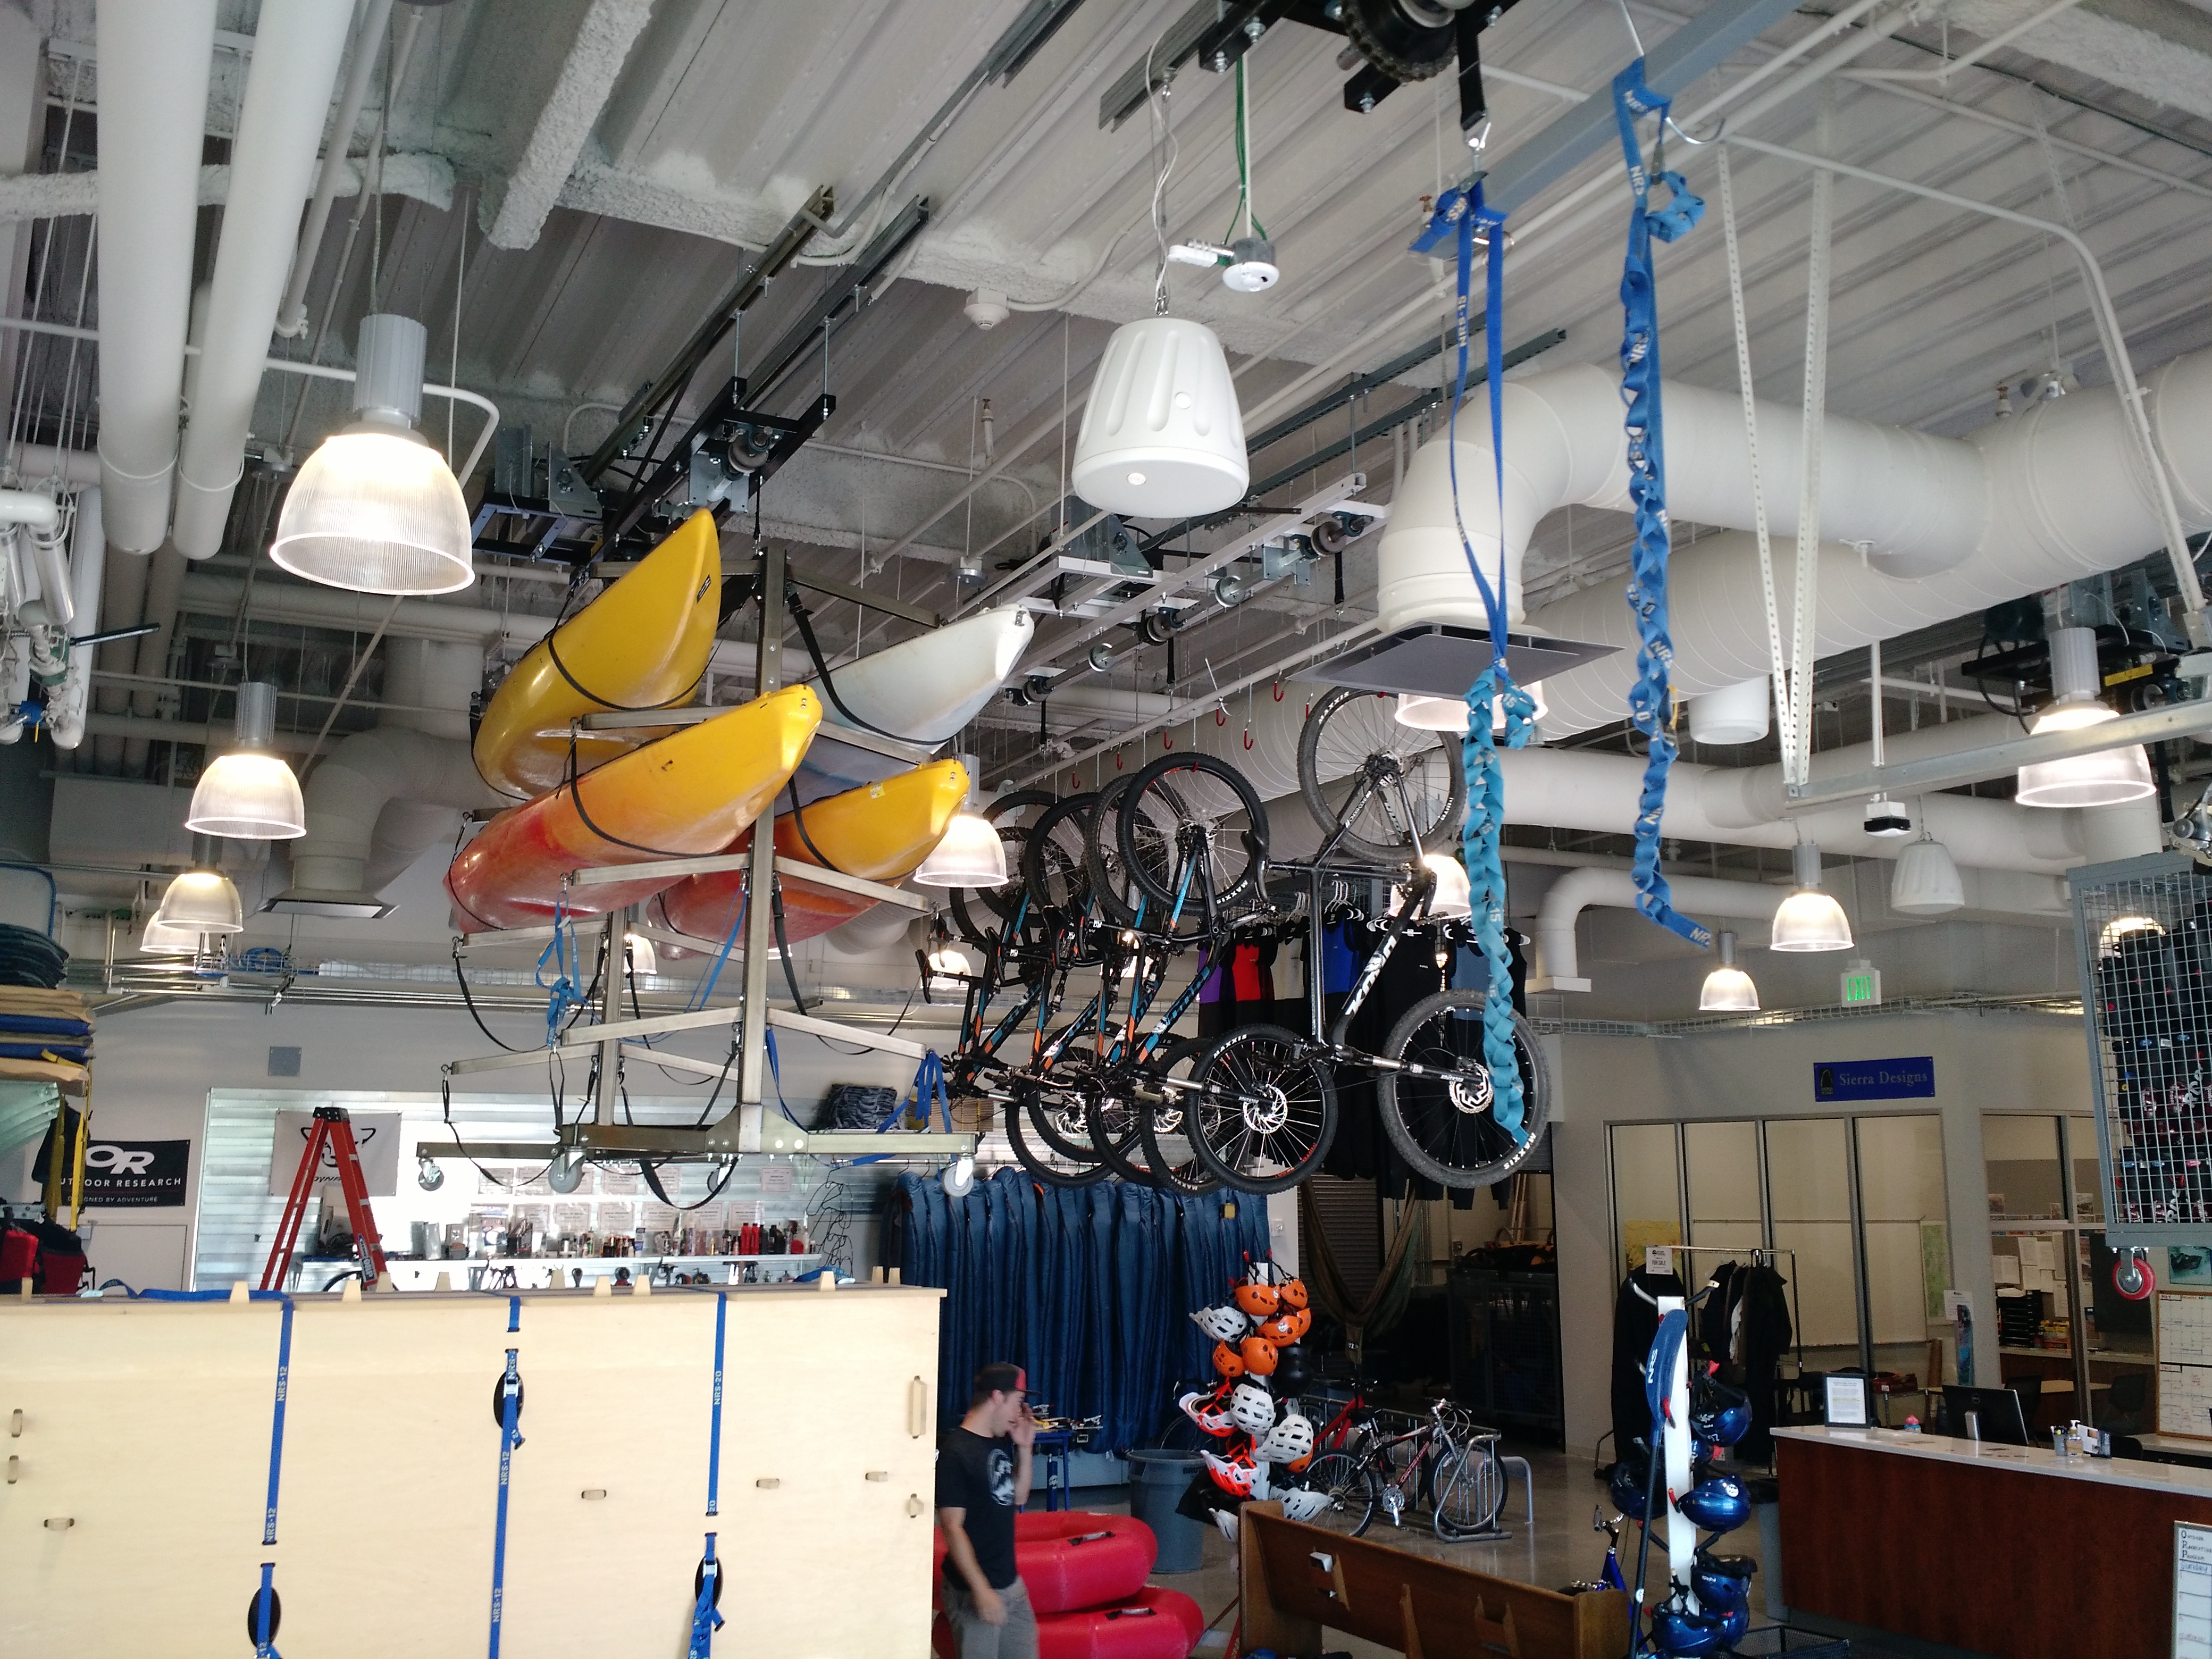 Overhead Lift-Idaho State Student Rec Center